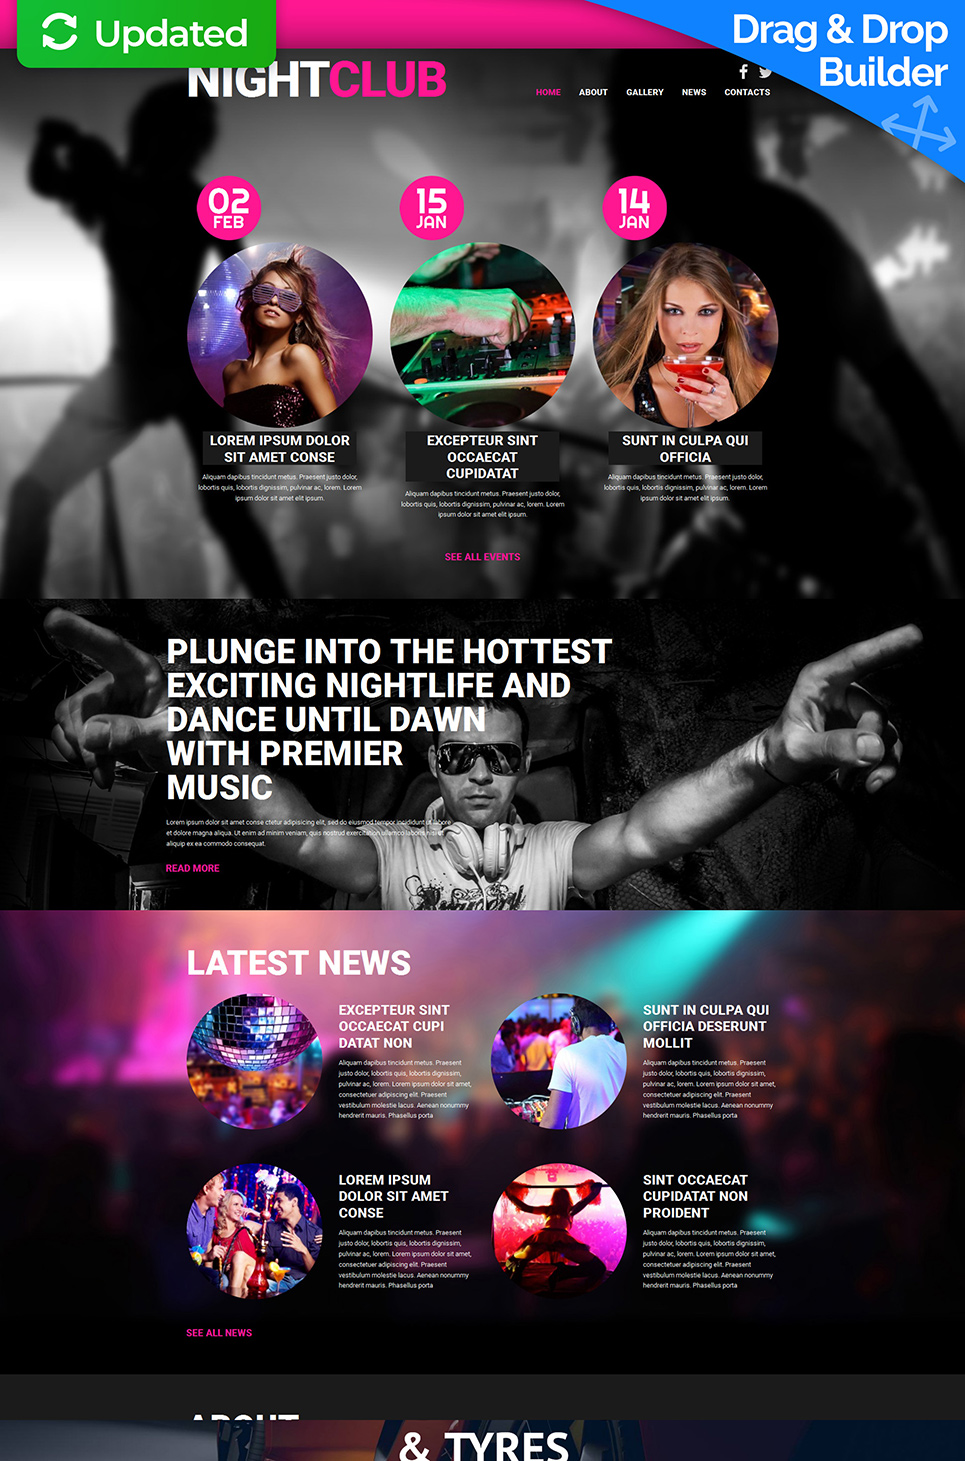 Responsive Design for Night Club Website - image